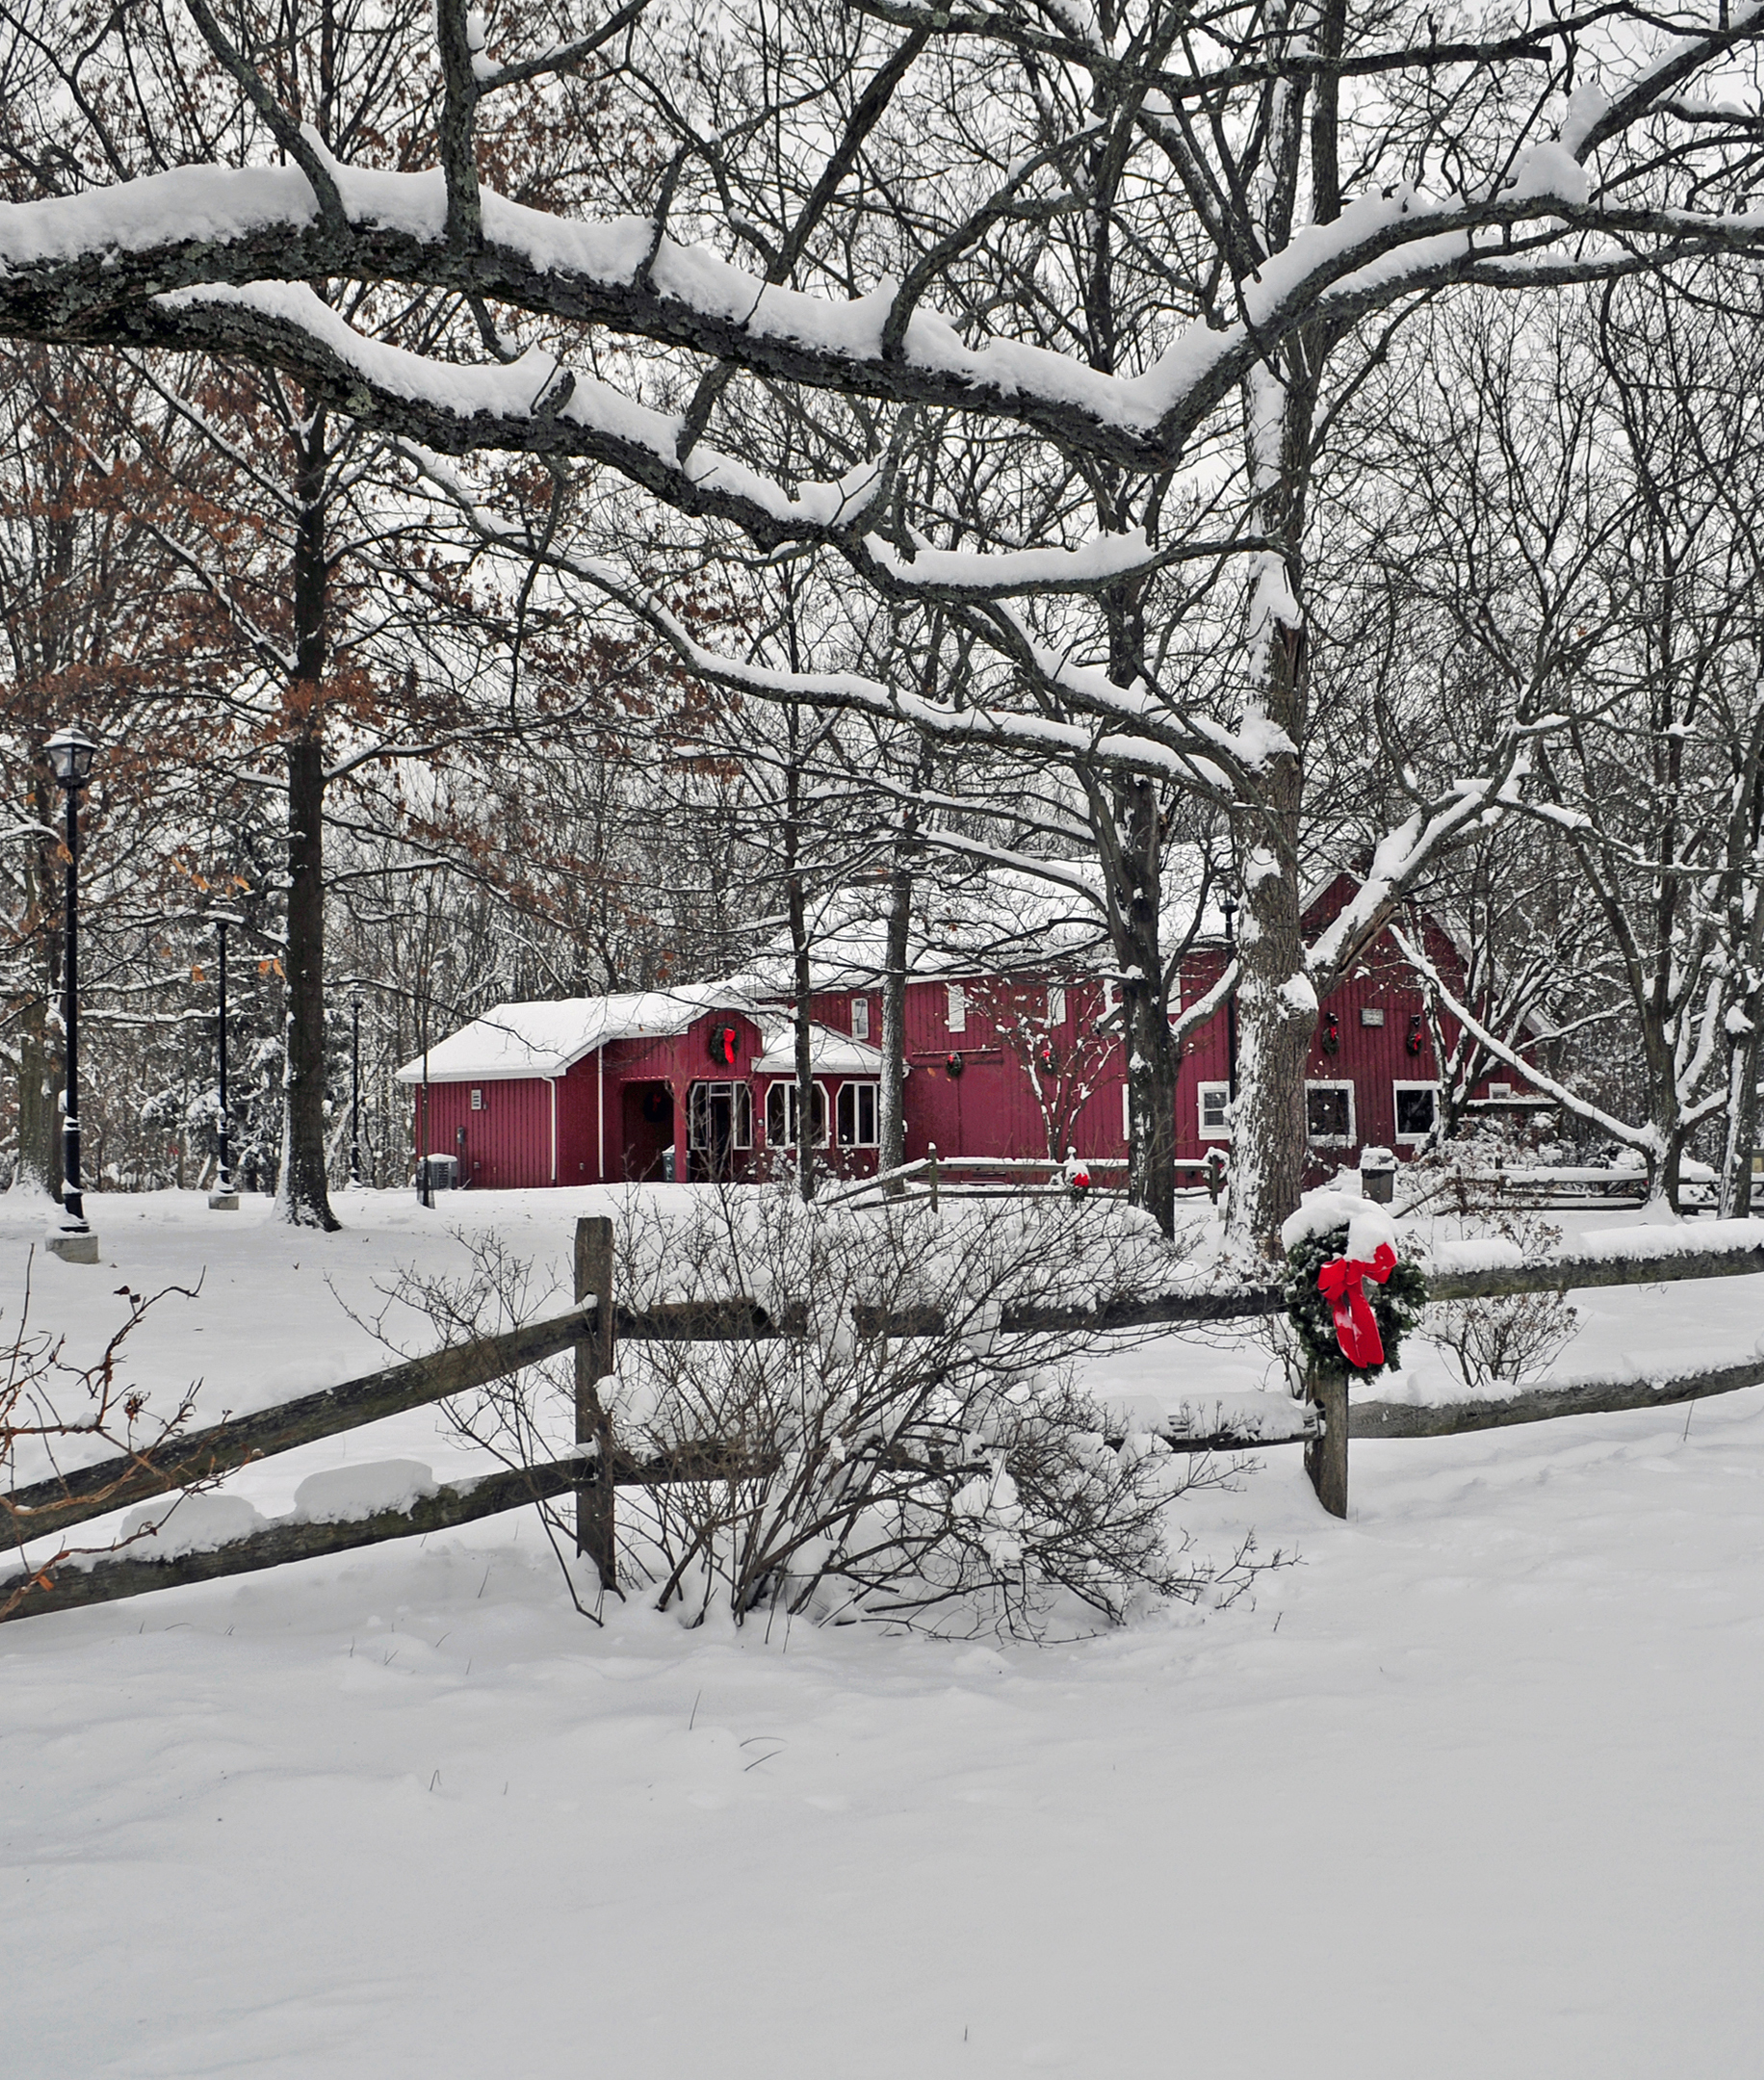 Snow blankets trees, shrubbery, the ground and Ellenwood Nature Barn.